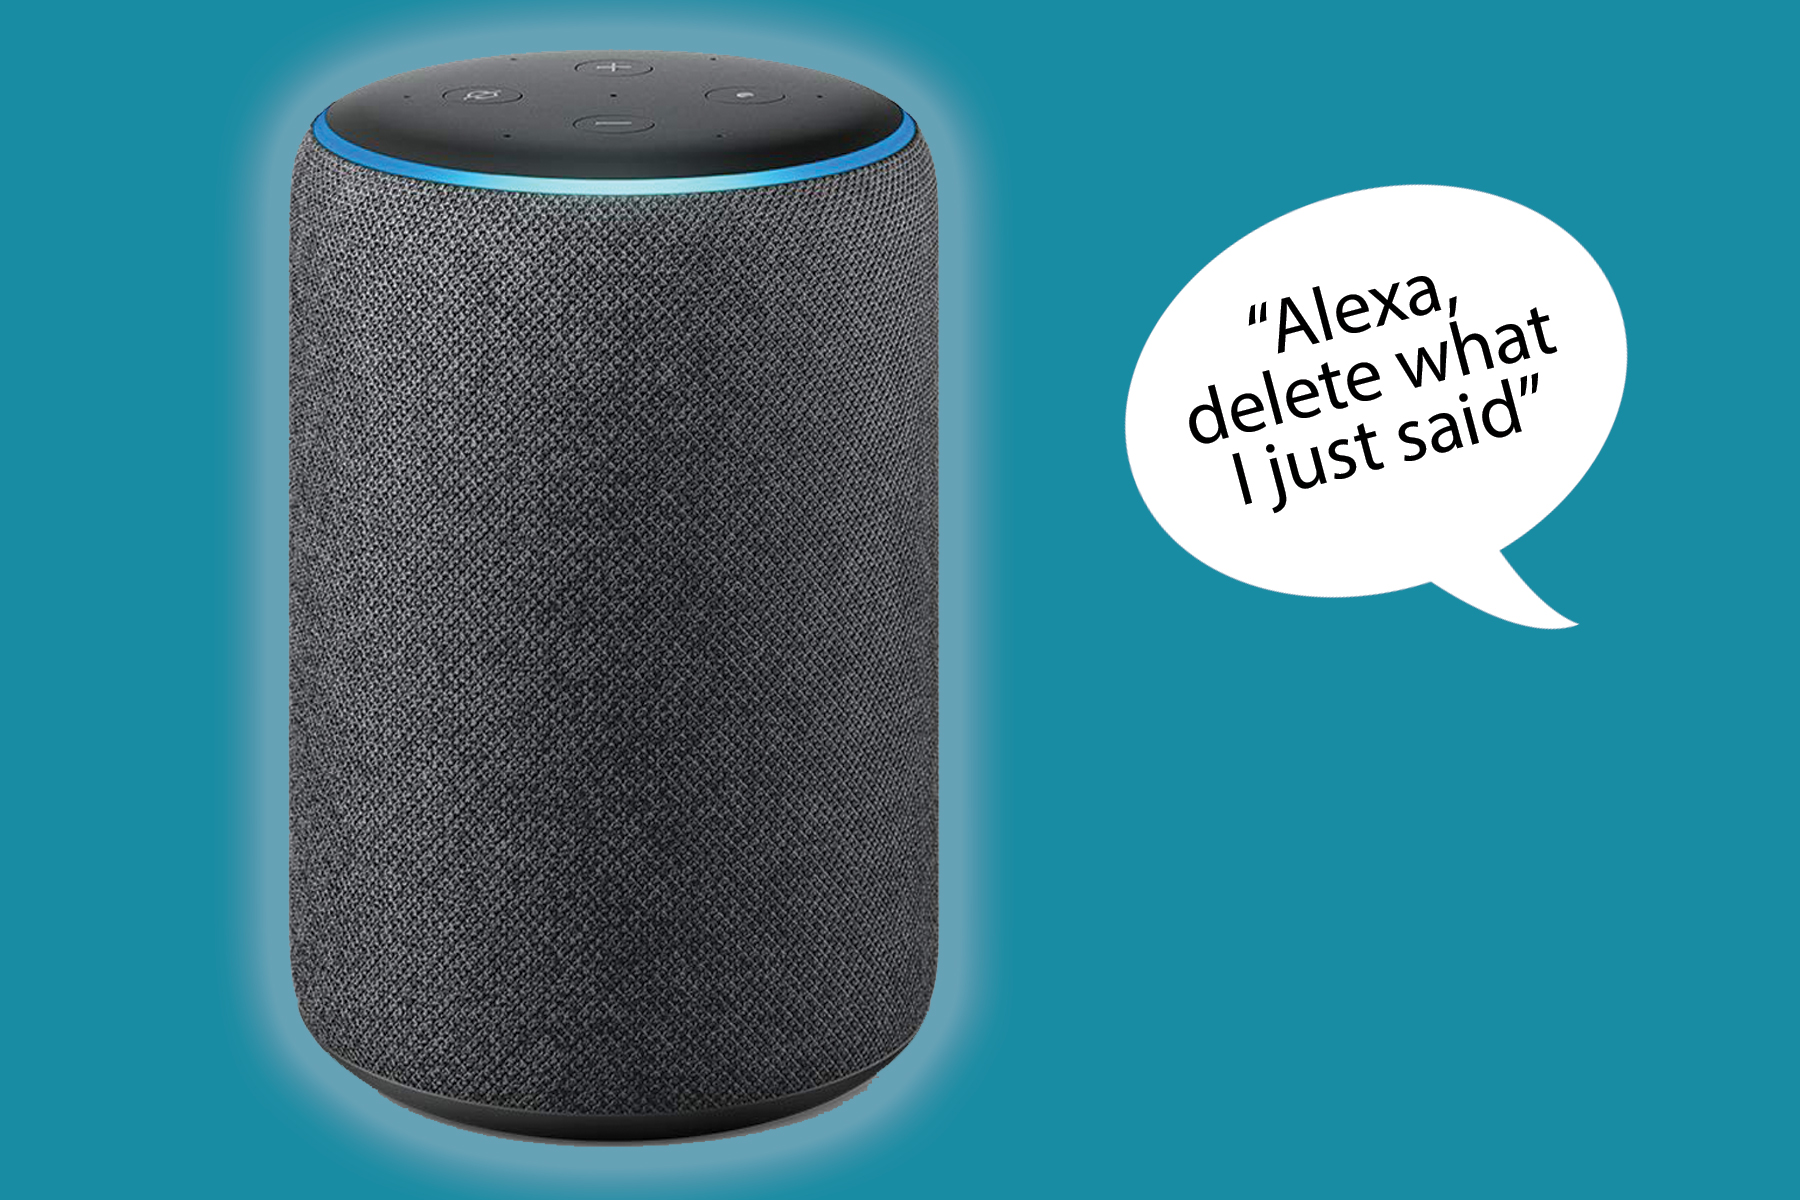 Amazon focuses on Alexa privacy as it unveils new gadgets